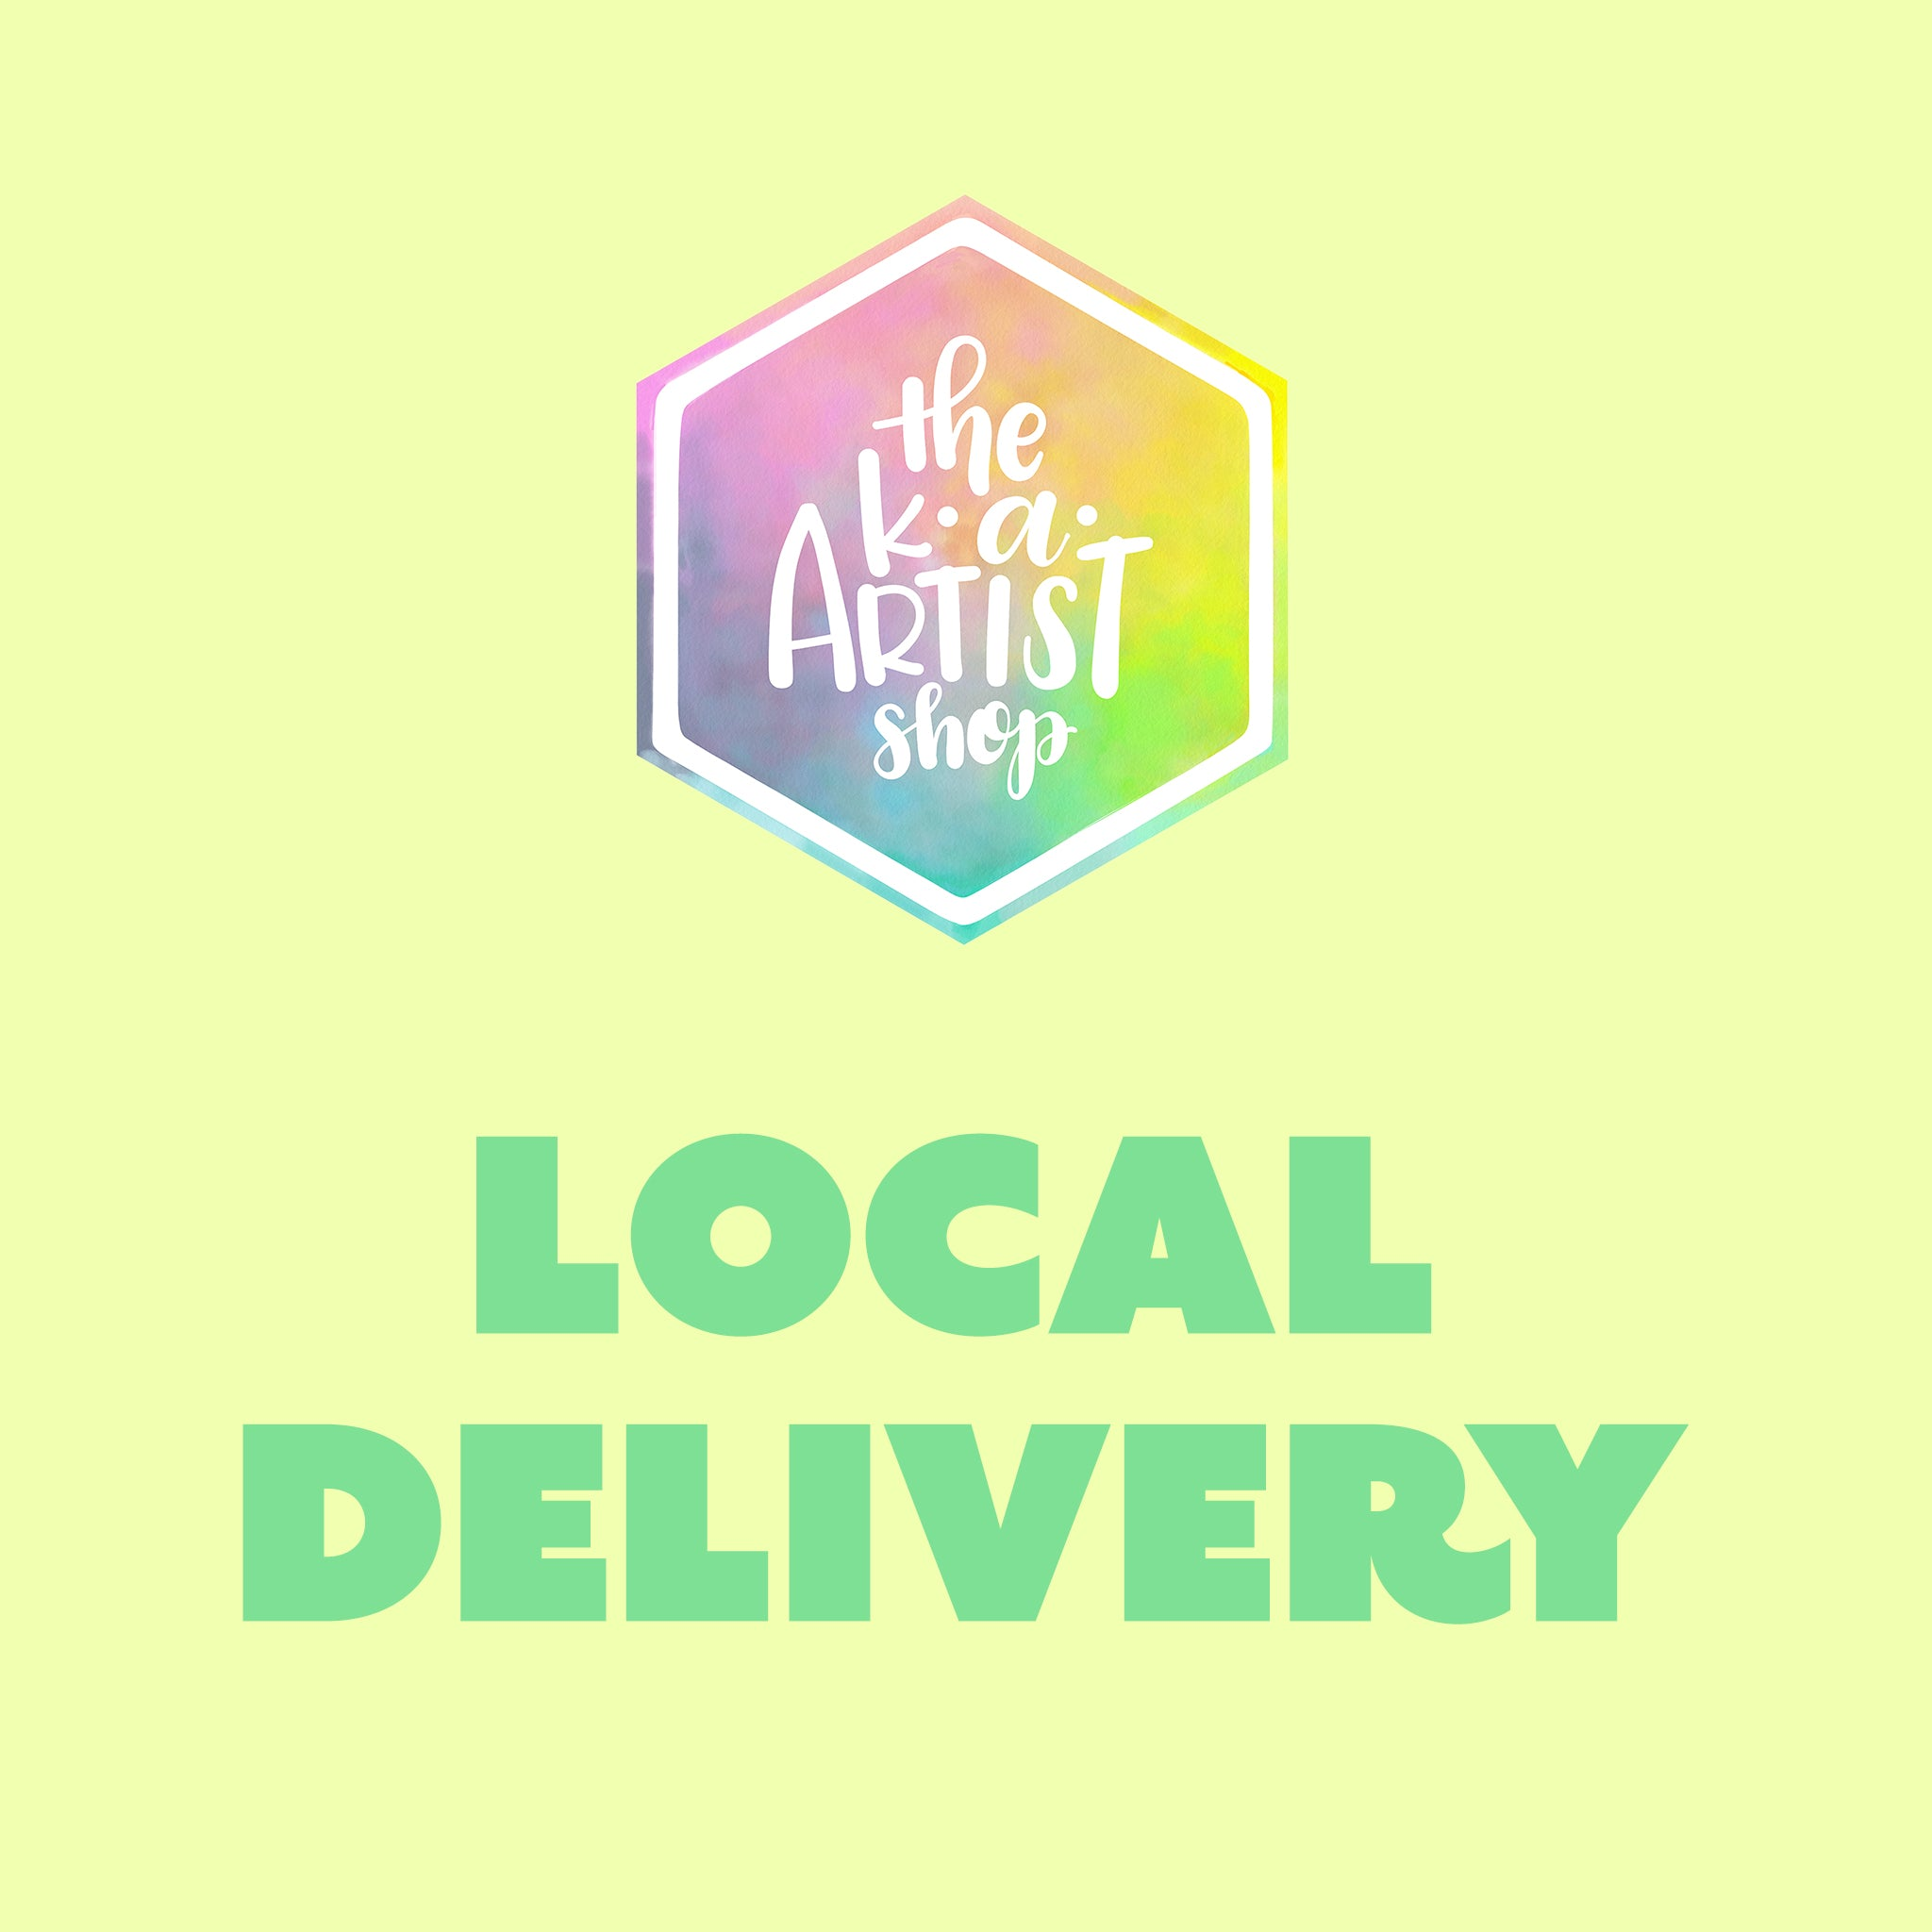 Local Delivery (for addresses within 5 miles of shop) - by K. A. Artist Shop - K. A. Artist Shop